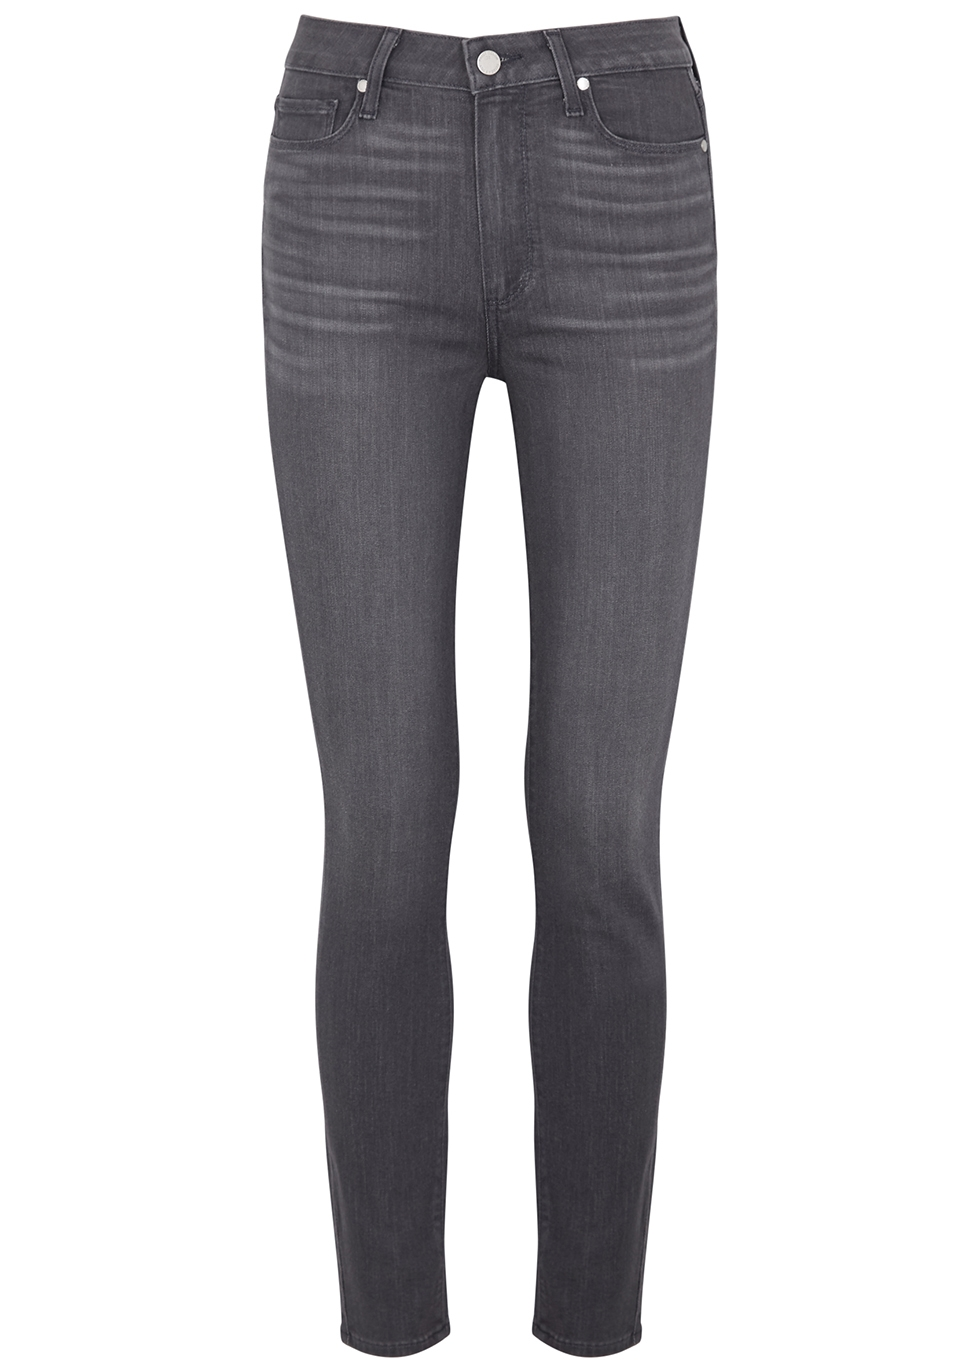 Hoxton Ankle grey skinny jeans